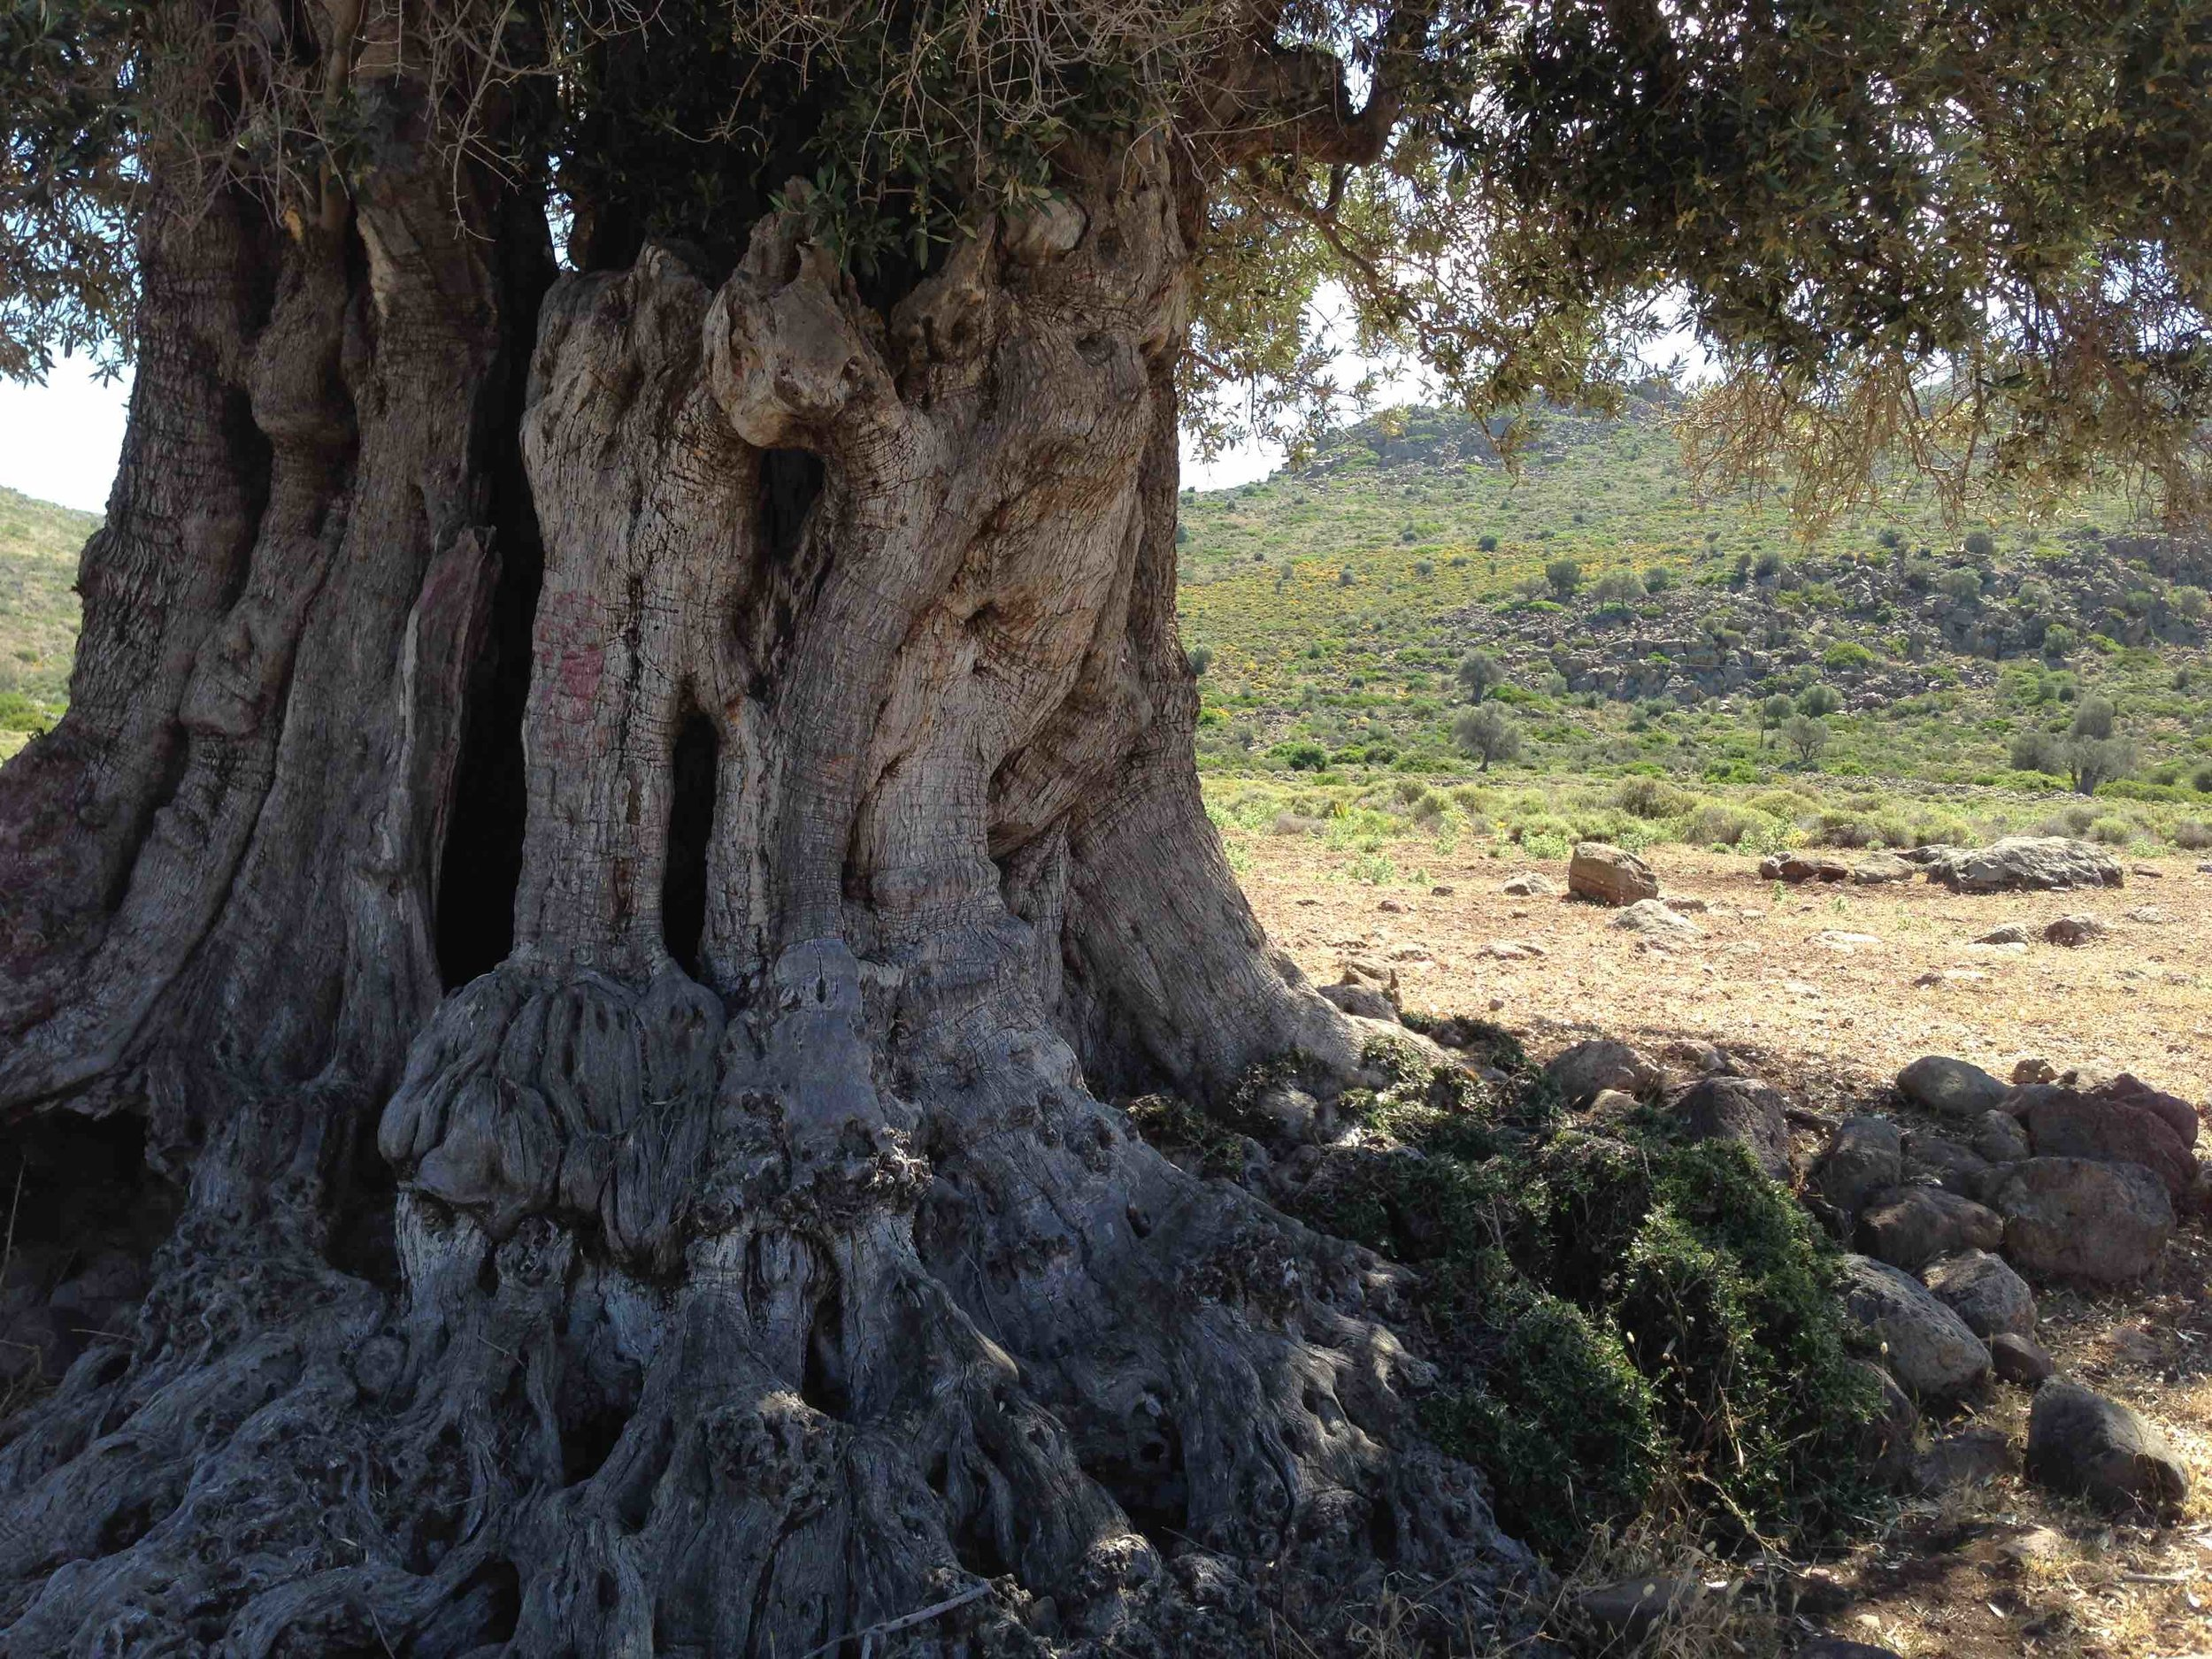 The drought-resistant olive tree represents one of the most historical connections of the EM/MENA region. Its fruit has always been of agricultural importance in the Mediterranean Basin through to the Arabian Peninsula.    Pictured is the Valley of Eleonas, the ancient olive grove on the island of Aegina, where trees are surrounded by wild shrubs and aromatics, in an area that has had little human intervention. Many of the trees still bearing fruit are over 2,500 years old, and date to a time when the Greeks were aware of their curative capabilities. The olives and their oil have been used as food and as medicine since ancient times.  Photo: Melina Nicolaides, 2017.